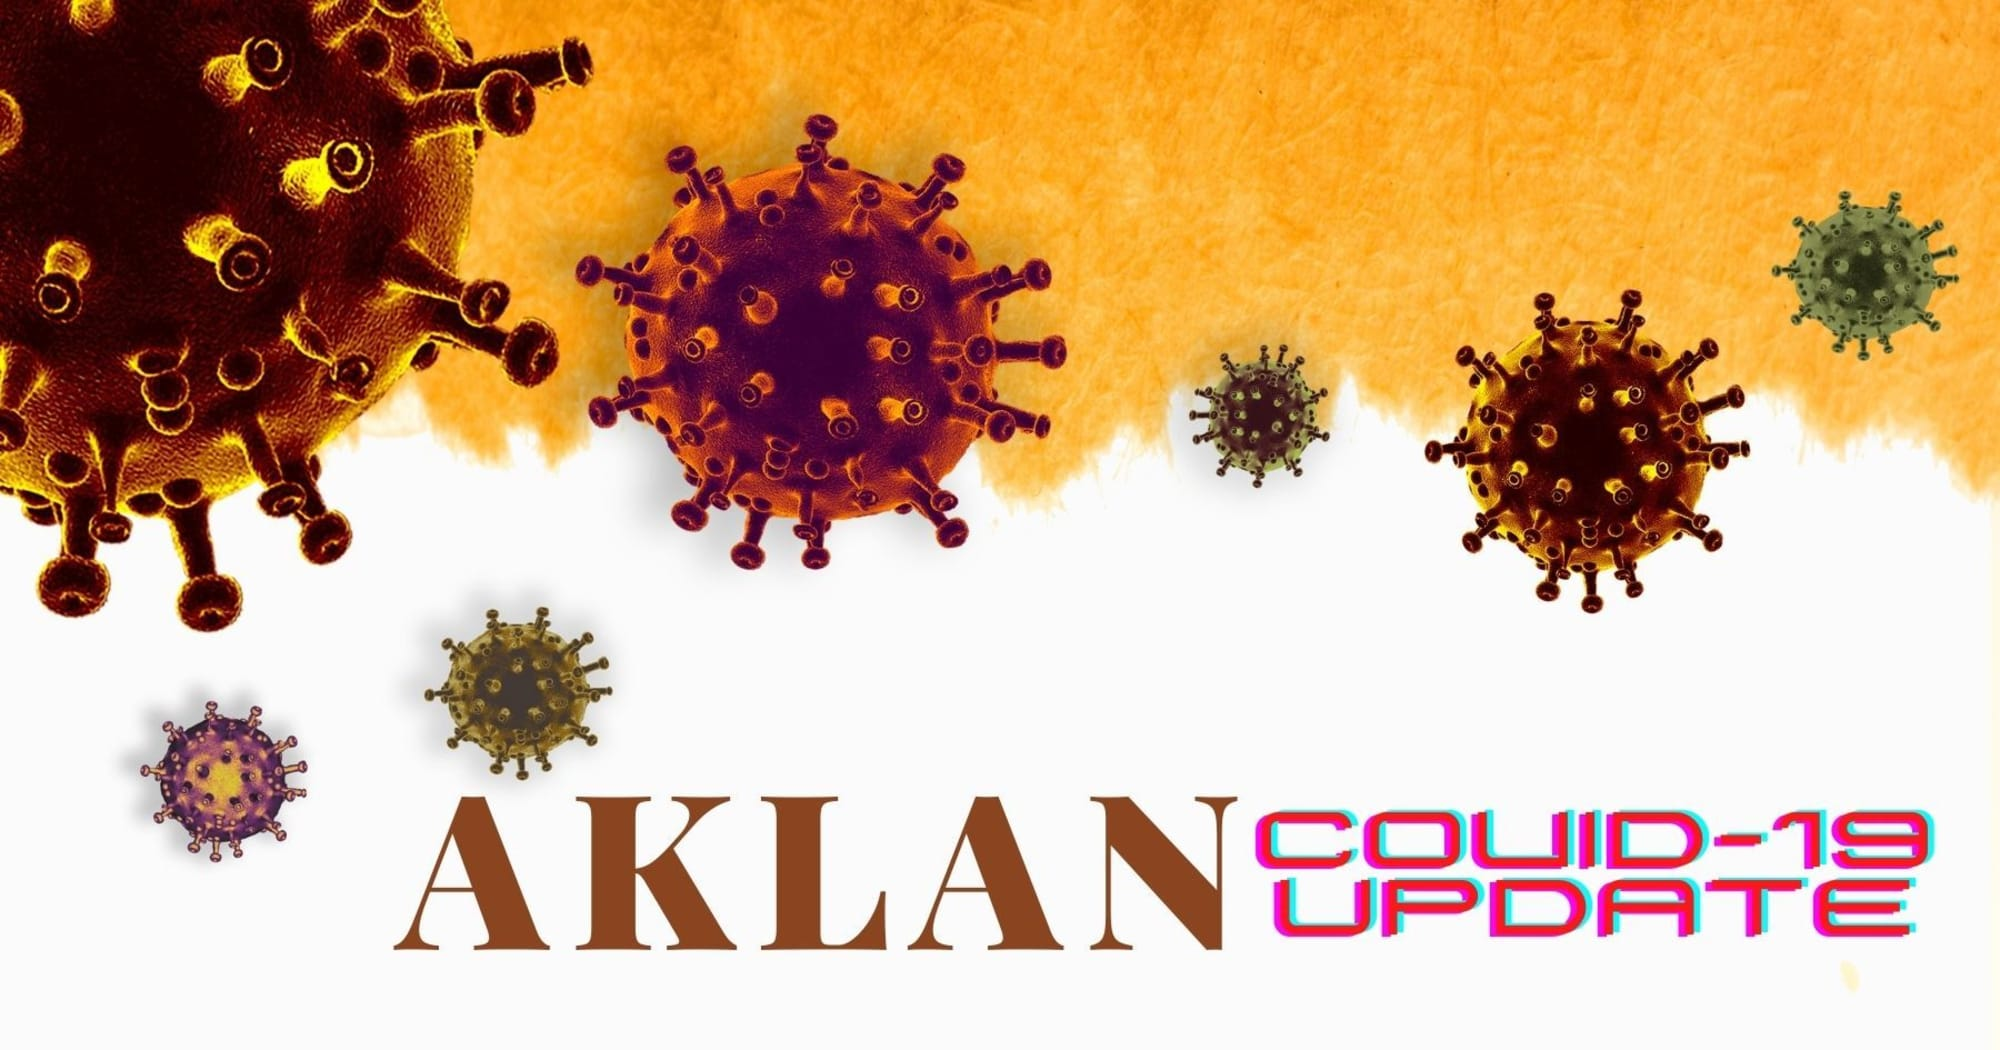 Aklan could surpass 1000 COVID infections